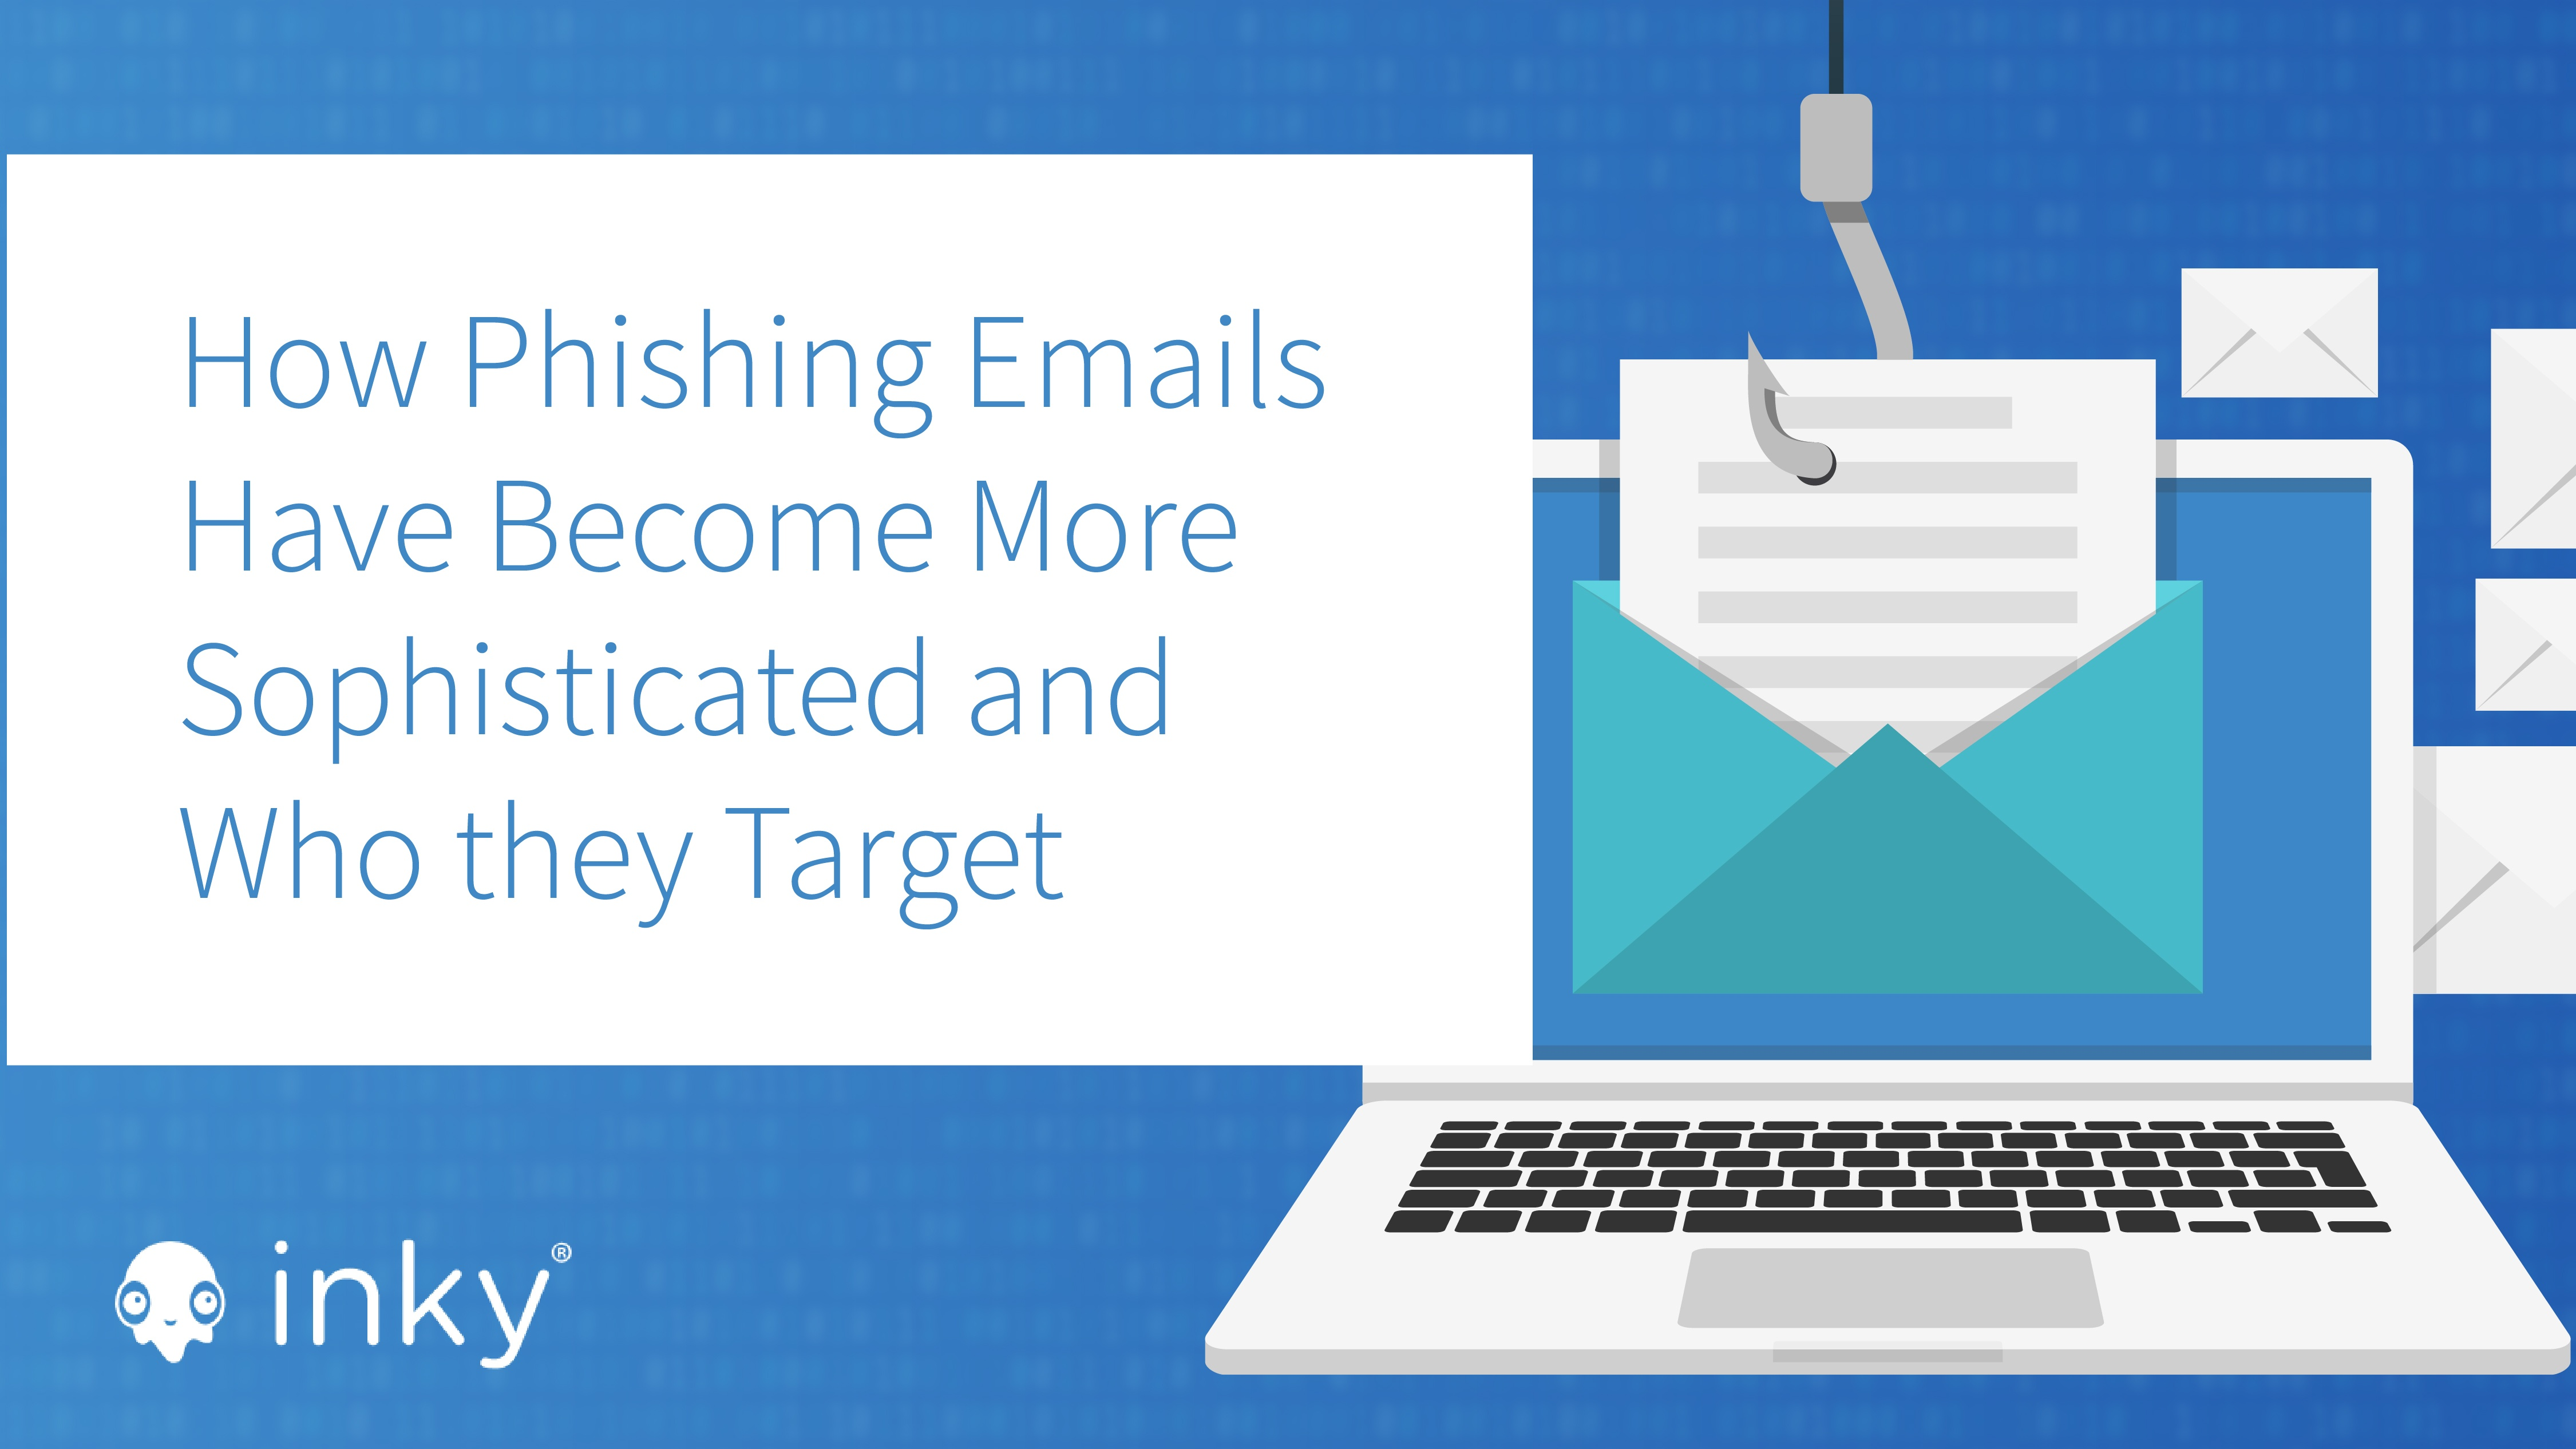 Who Phishing Emails Target